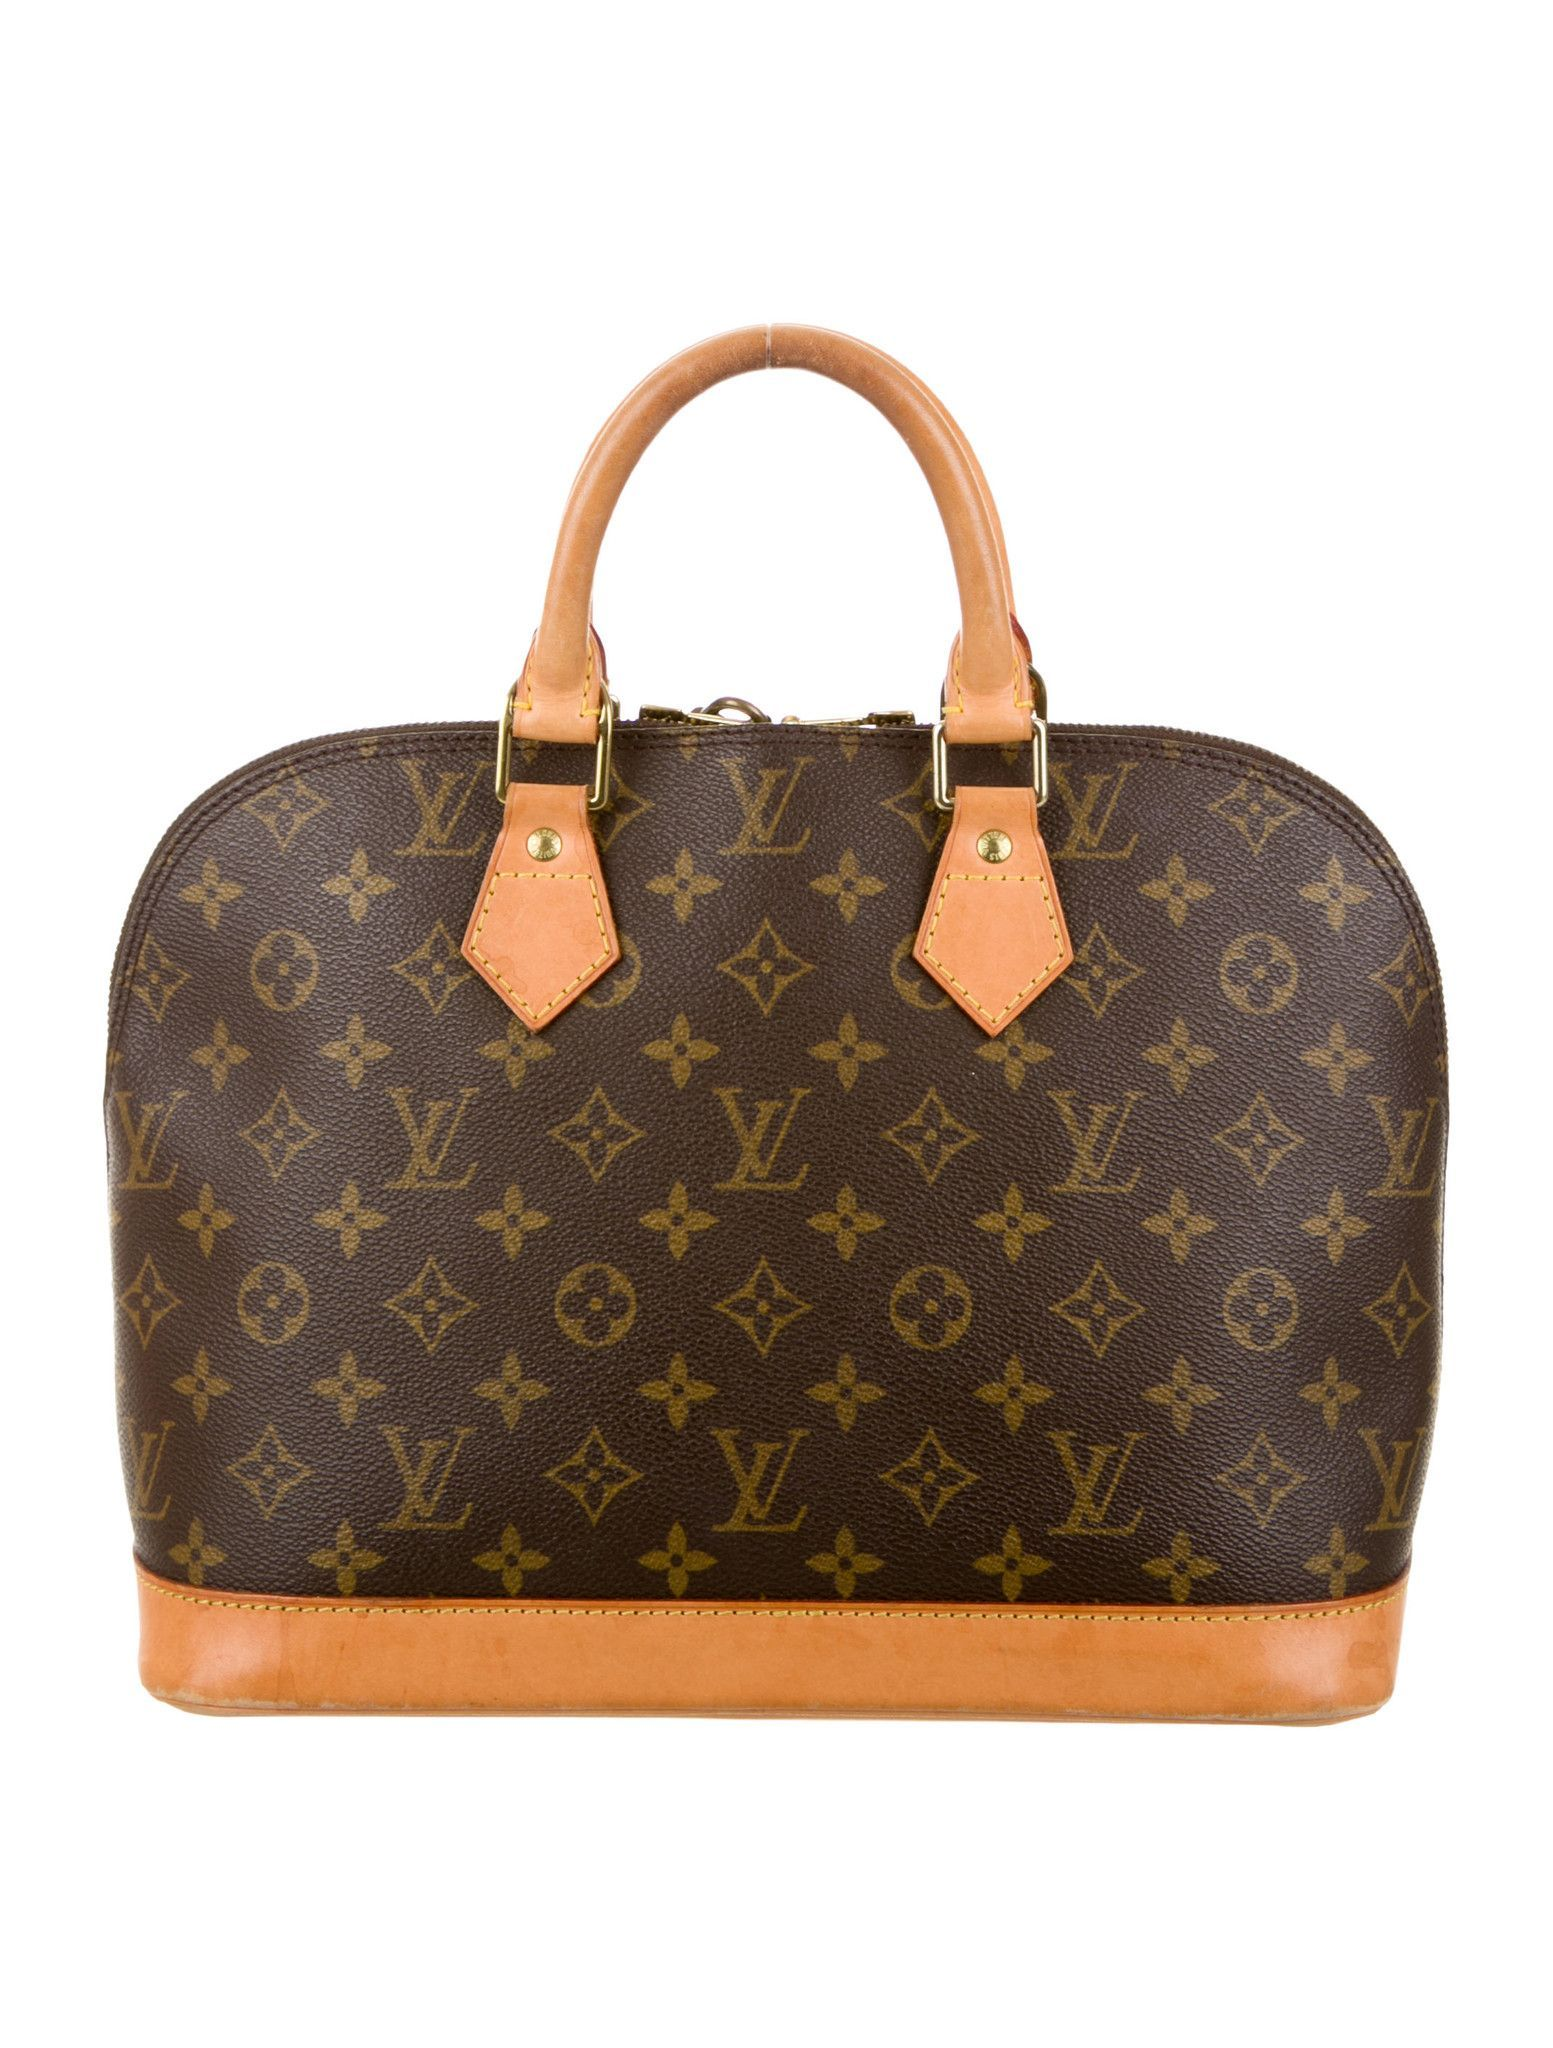 e453e851902b Louis Vuitton Brown and tan monogram coated canvas Alma MM bag with brass  hardware